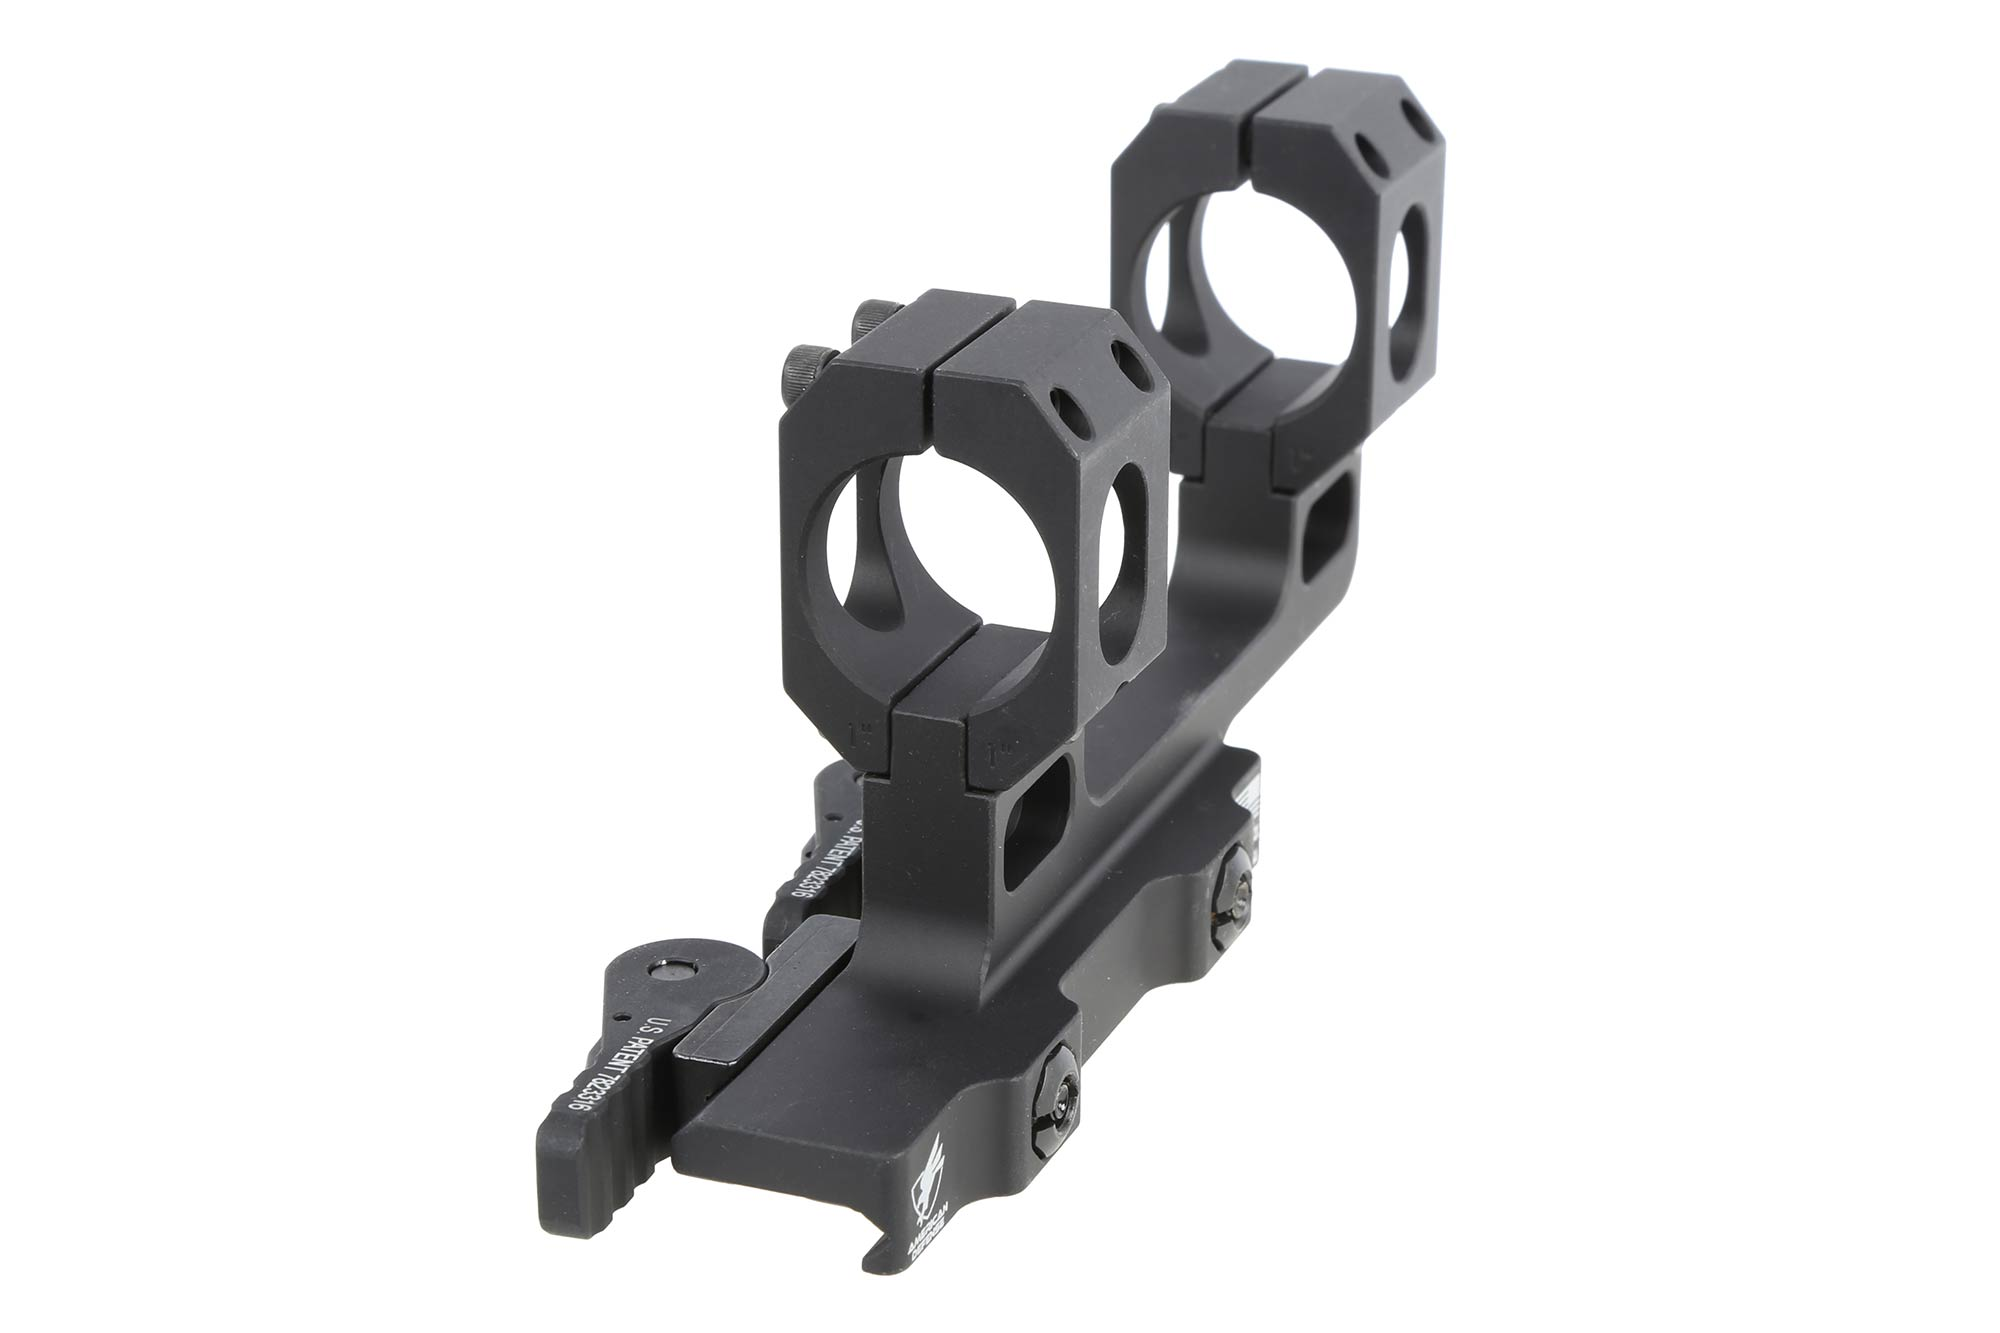 ADM 1 RECON High scope mount is perfect for rifles with monolithic receivers. Black anodized finish.